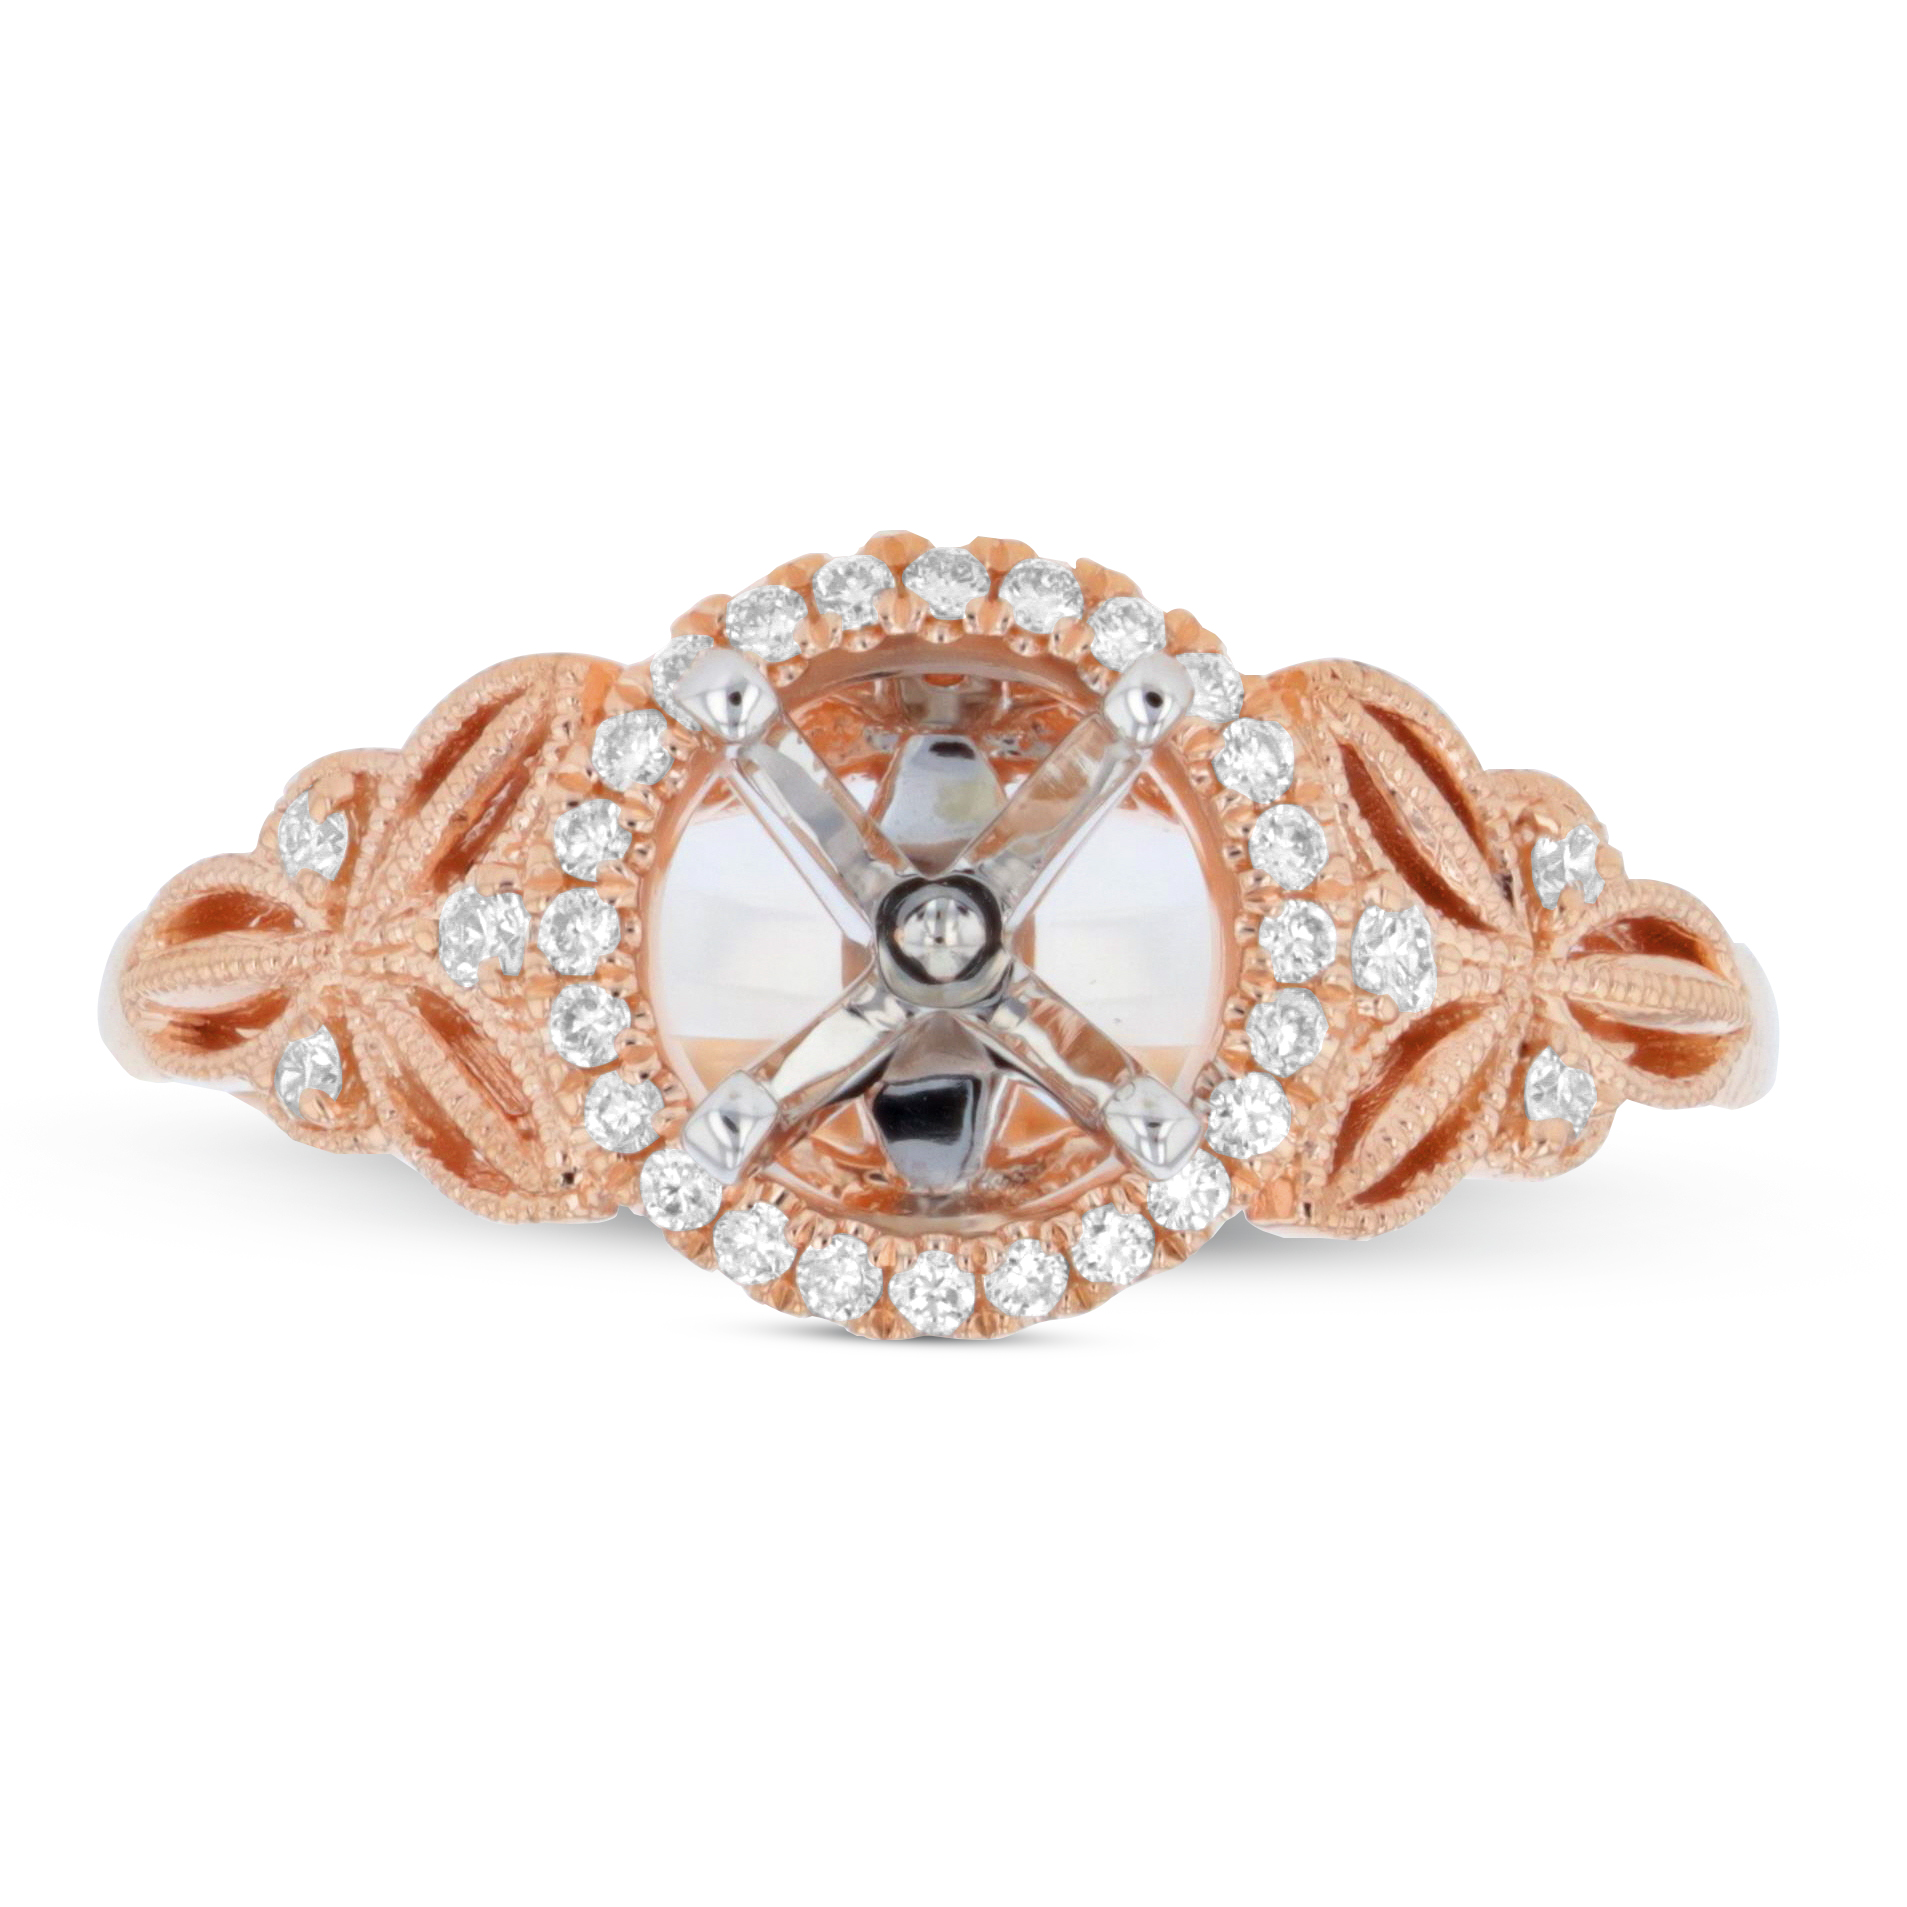 View 0.16ctw Diamond Semi Mount in 14k Rose Gold